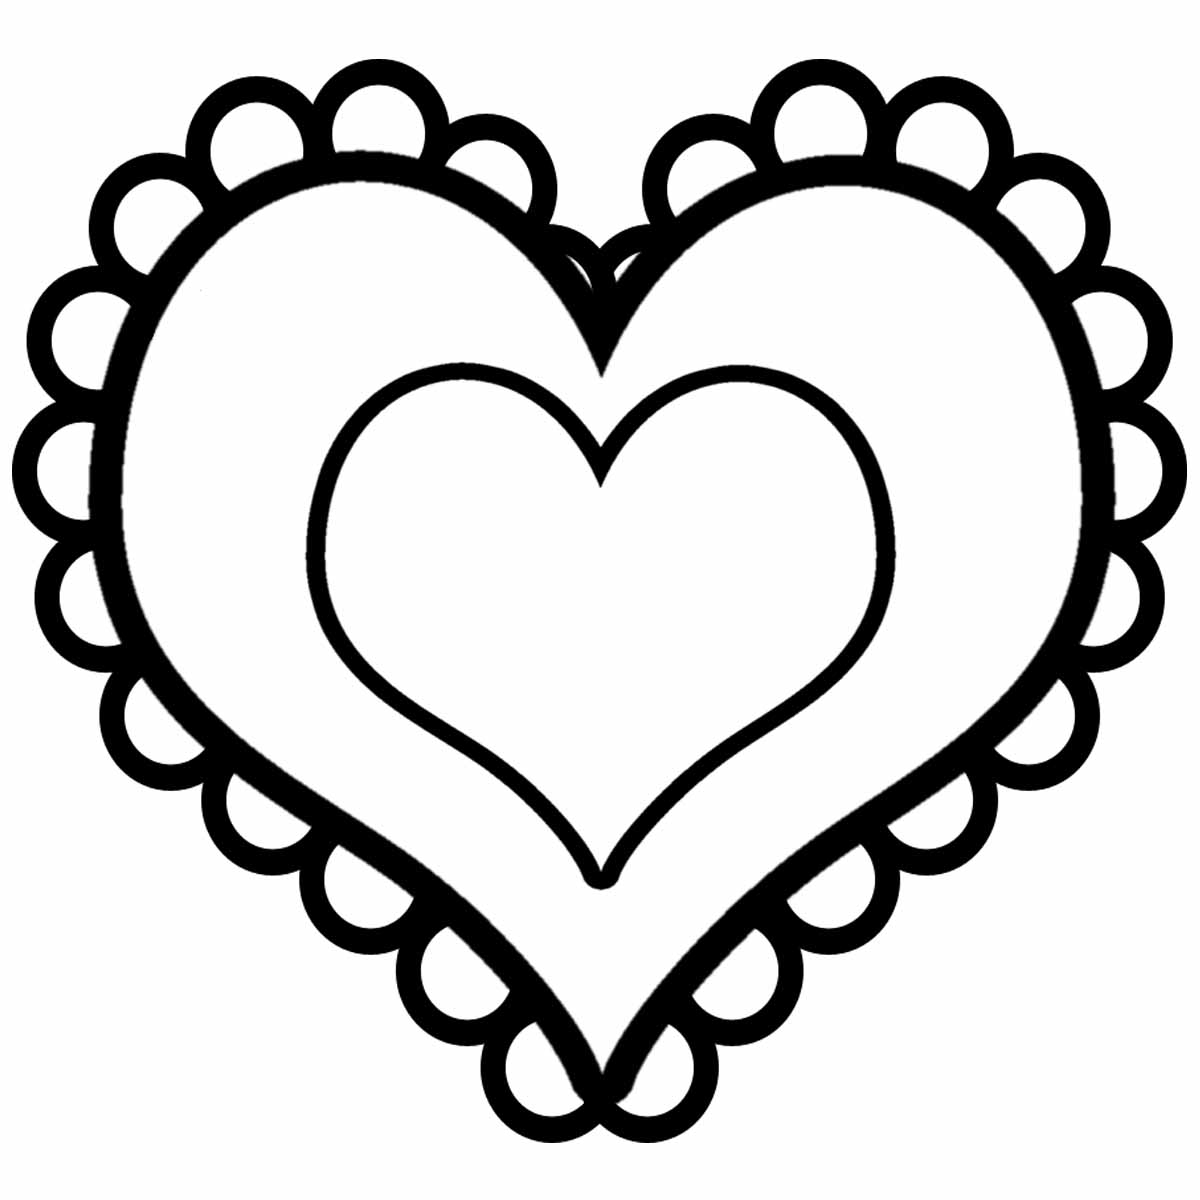 Heart Coloring Pages Valentine Heart Coloring Pages  Best Coloring Pages For Kids